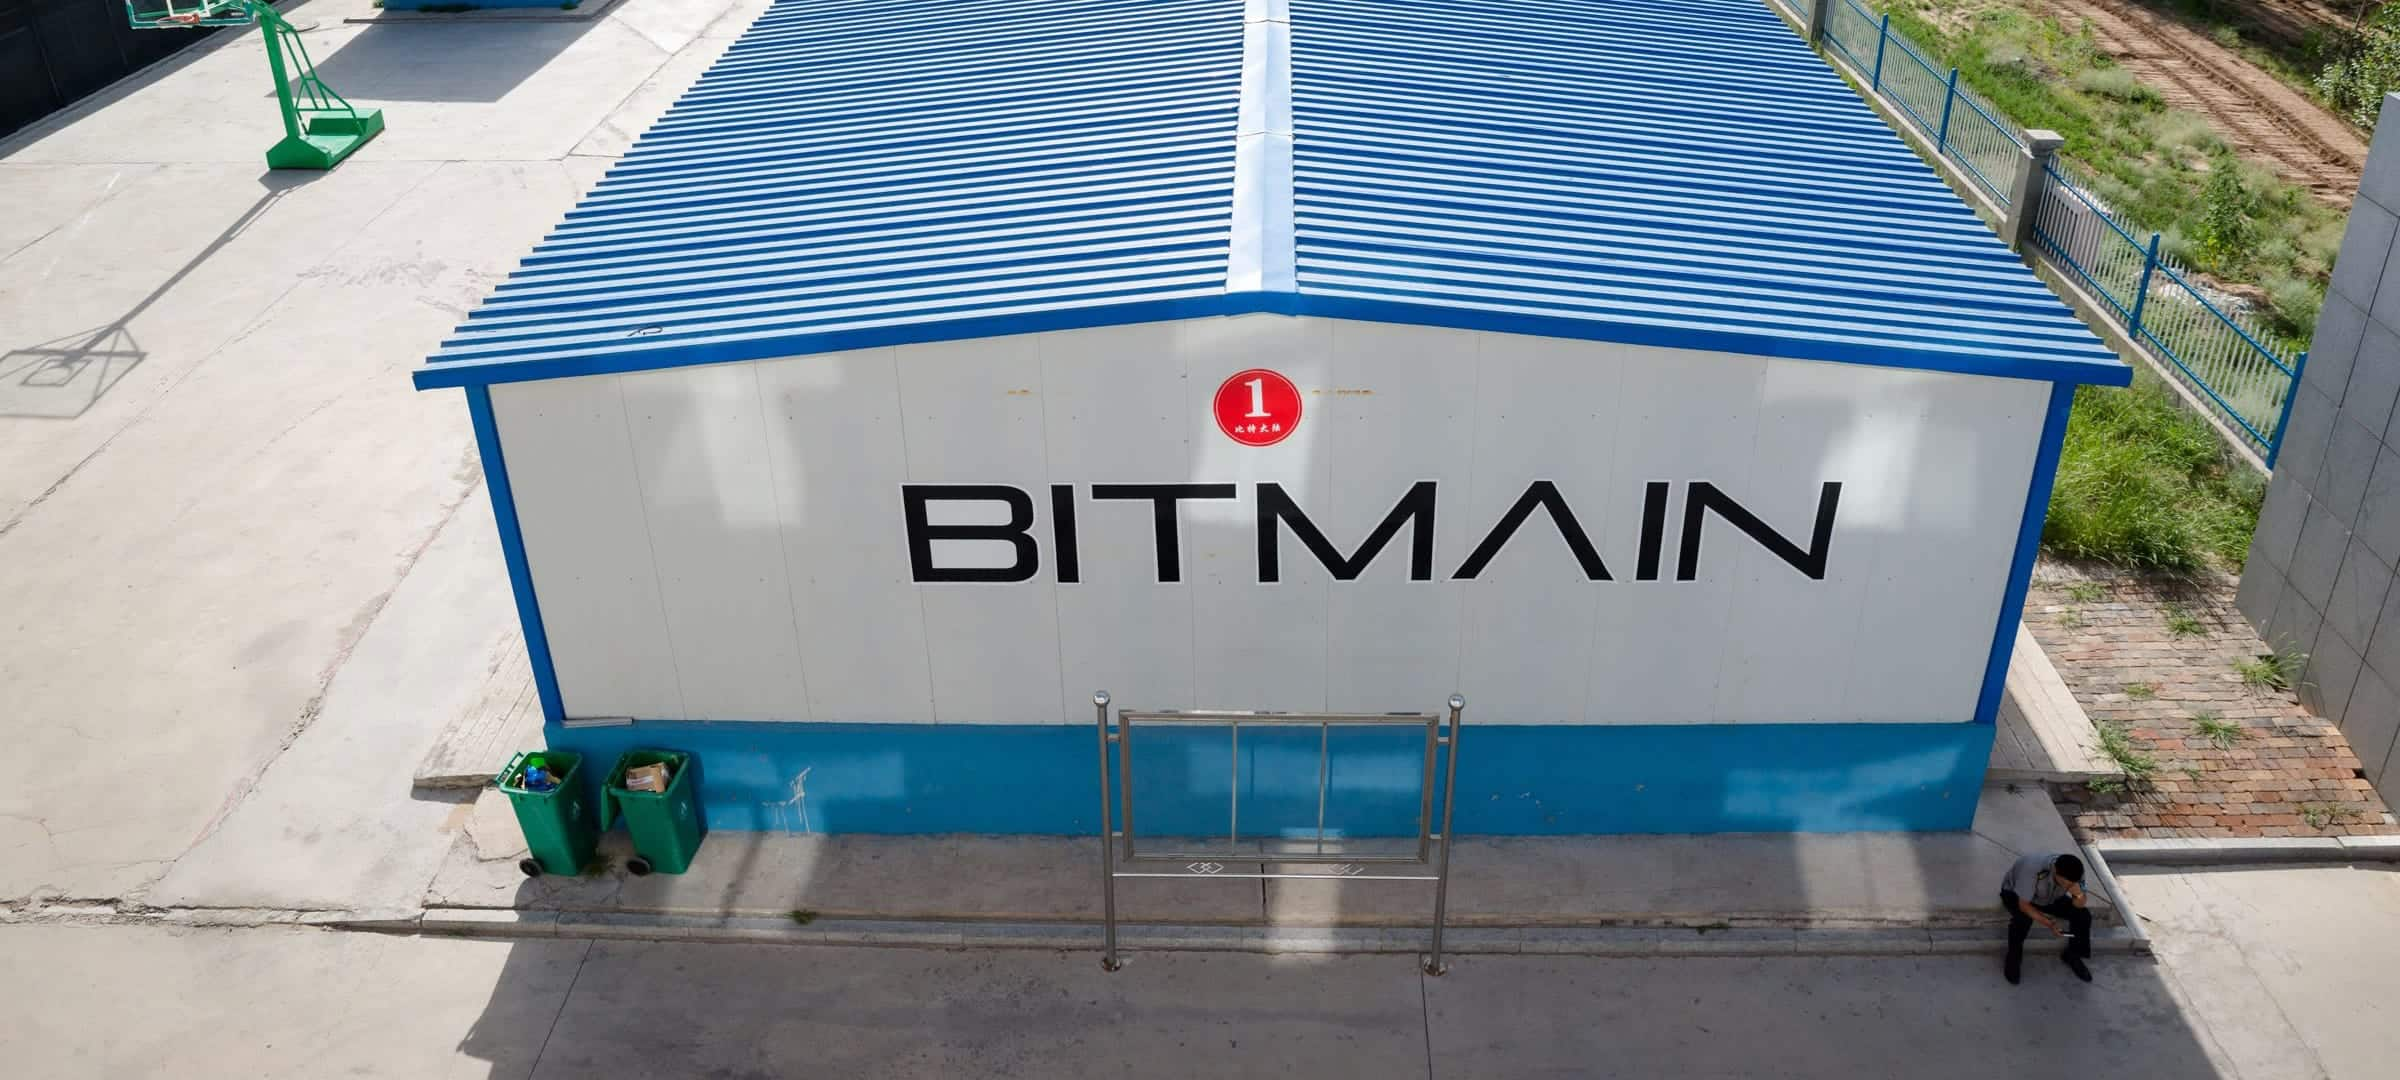 Bitmain A3 ASIC miner takes SiaCoin by surprise